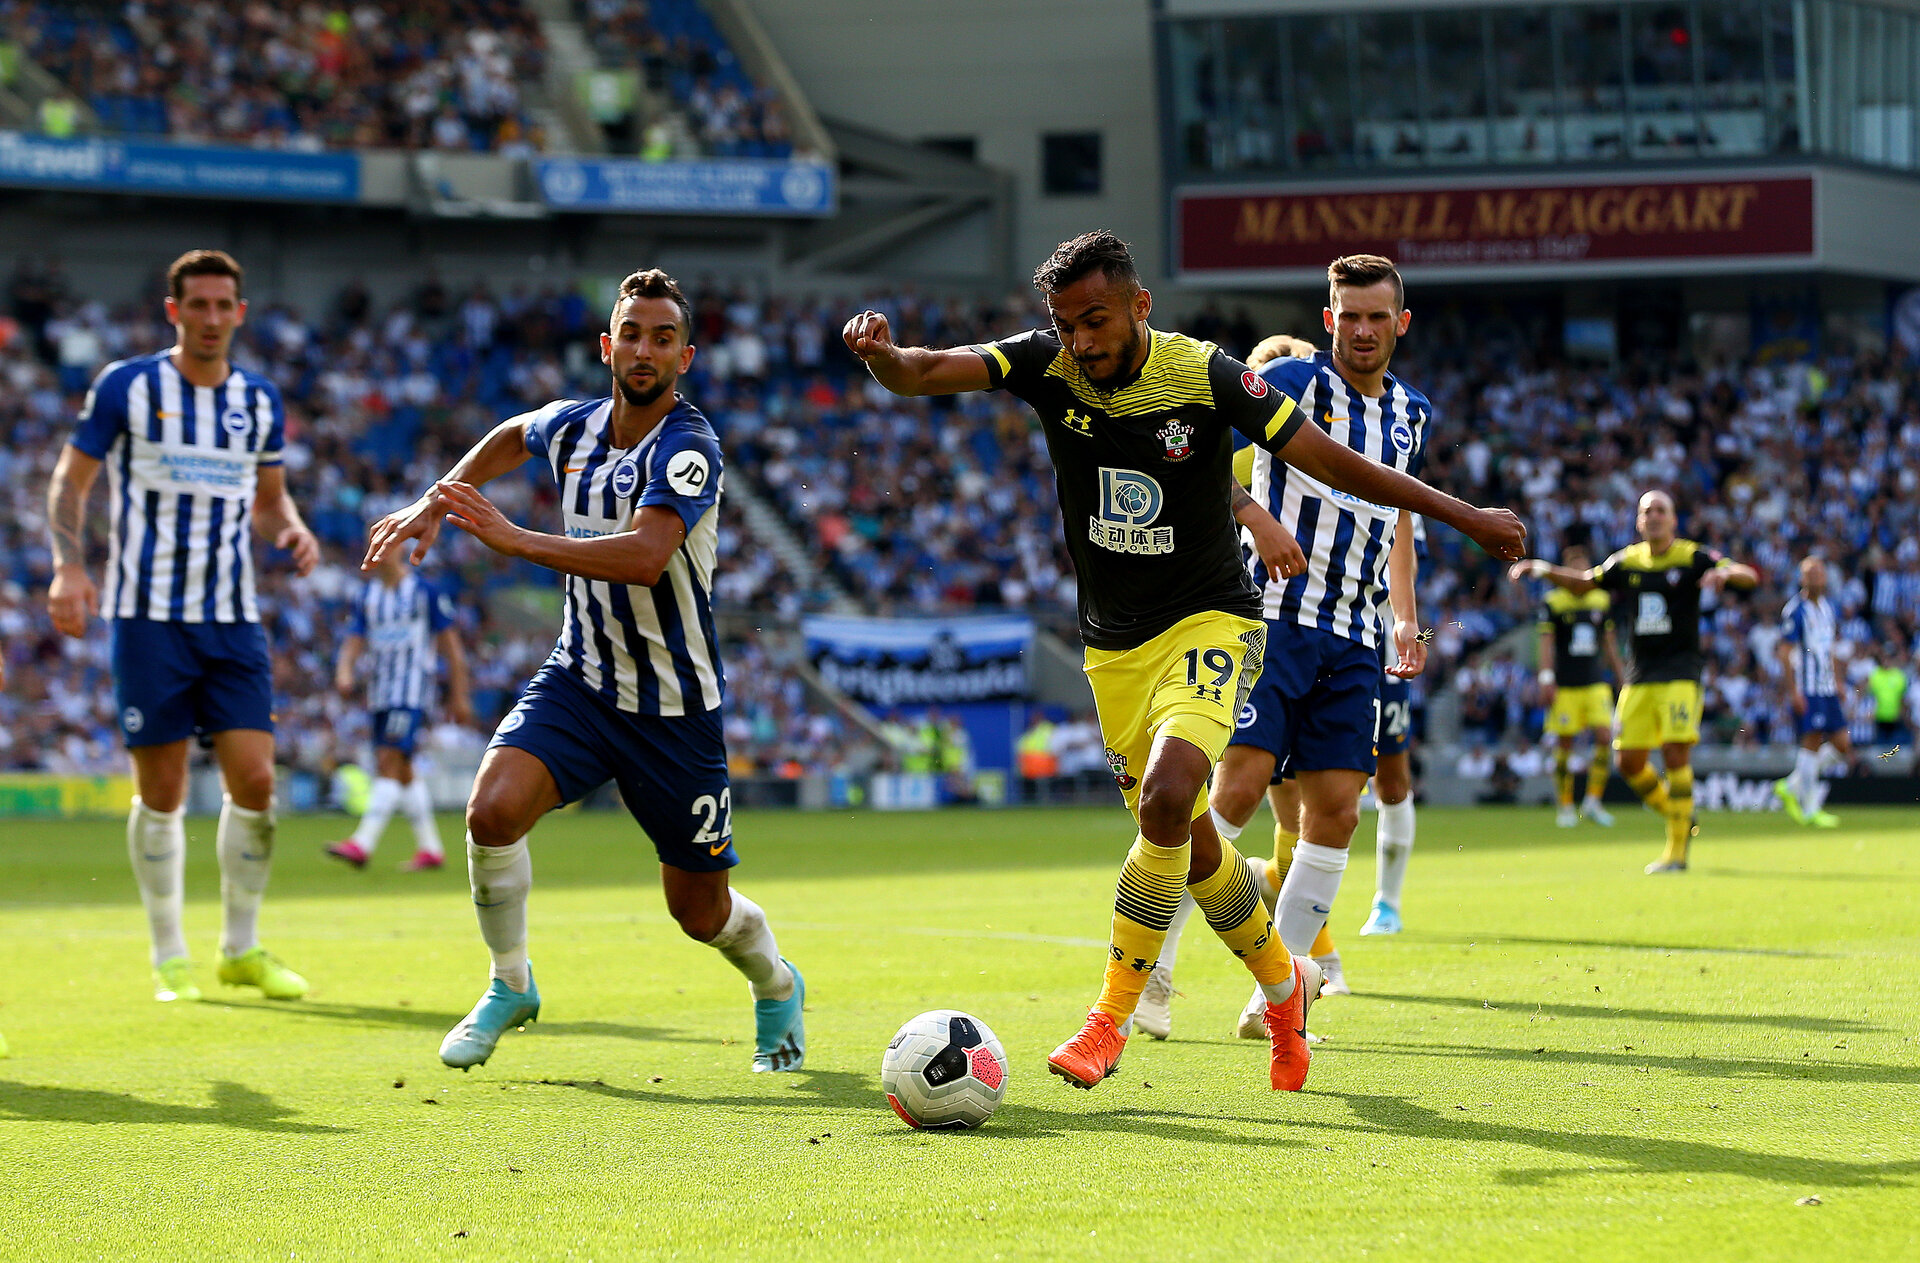 BRIGHTON, ENGLAND - AUGUST 24: Sofiane Boufal(R) of Southampton shoots across goal for Nathan Redmond(out of shot) to score during the Premier League match between Brighton & Hove Albion and Southampton FC at American Express Community Stadium on August 24, 2019 in Brighton, United Kingdom. (Photo by Matt Watson/Southampton FC via Getty Images)